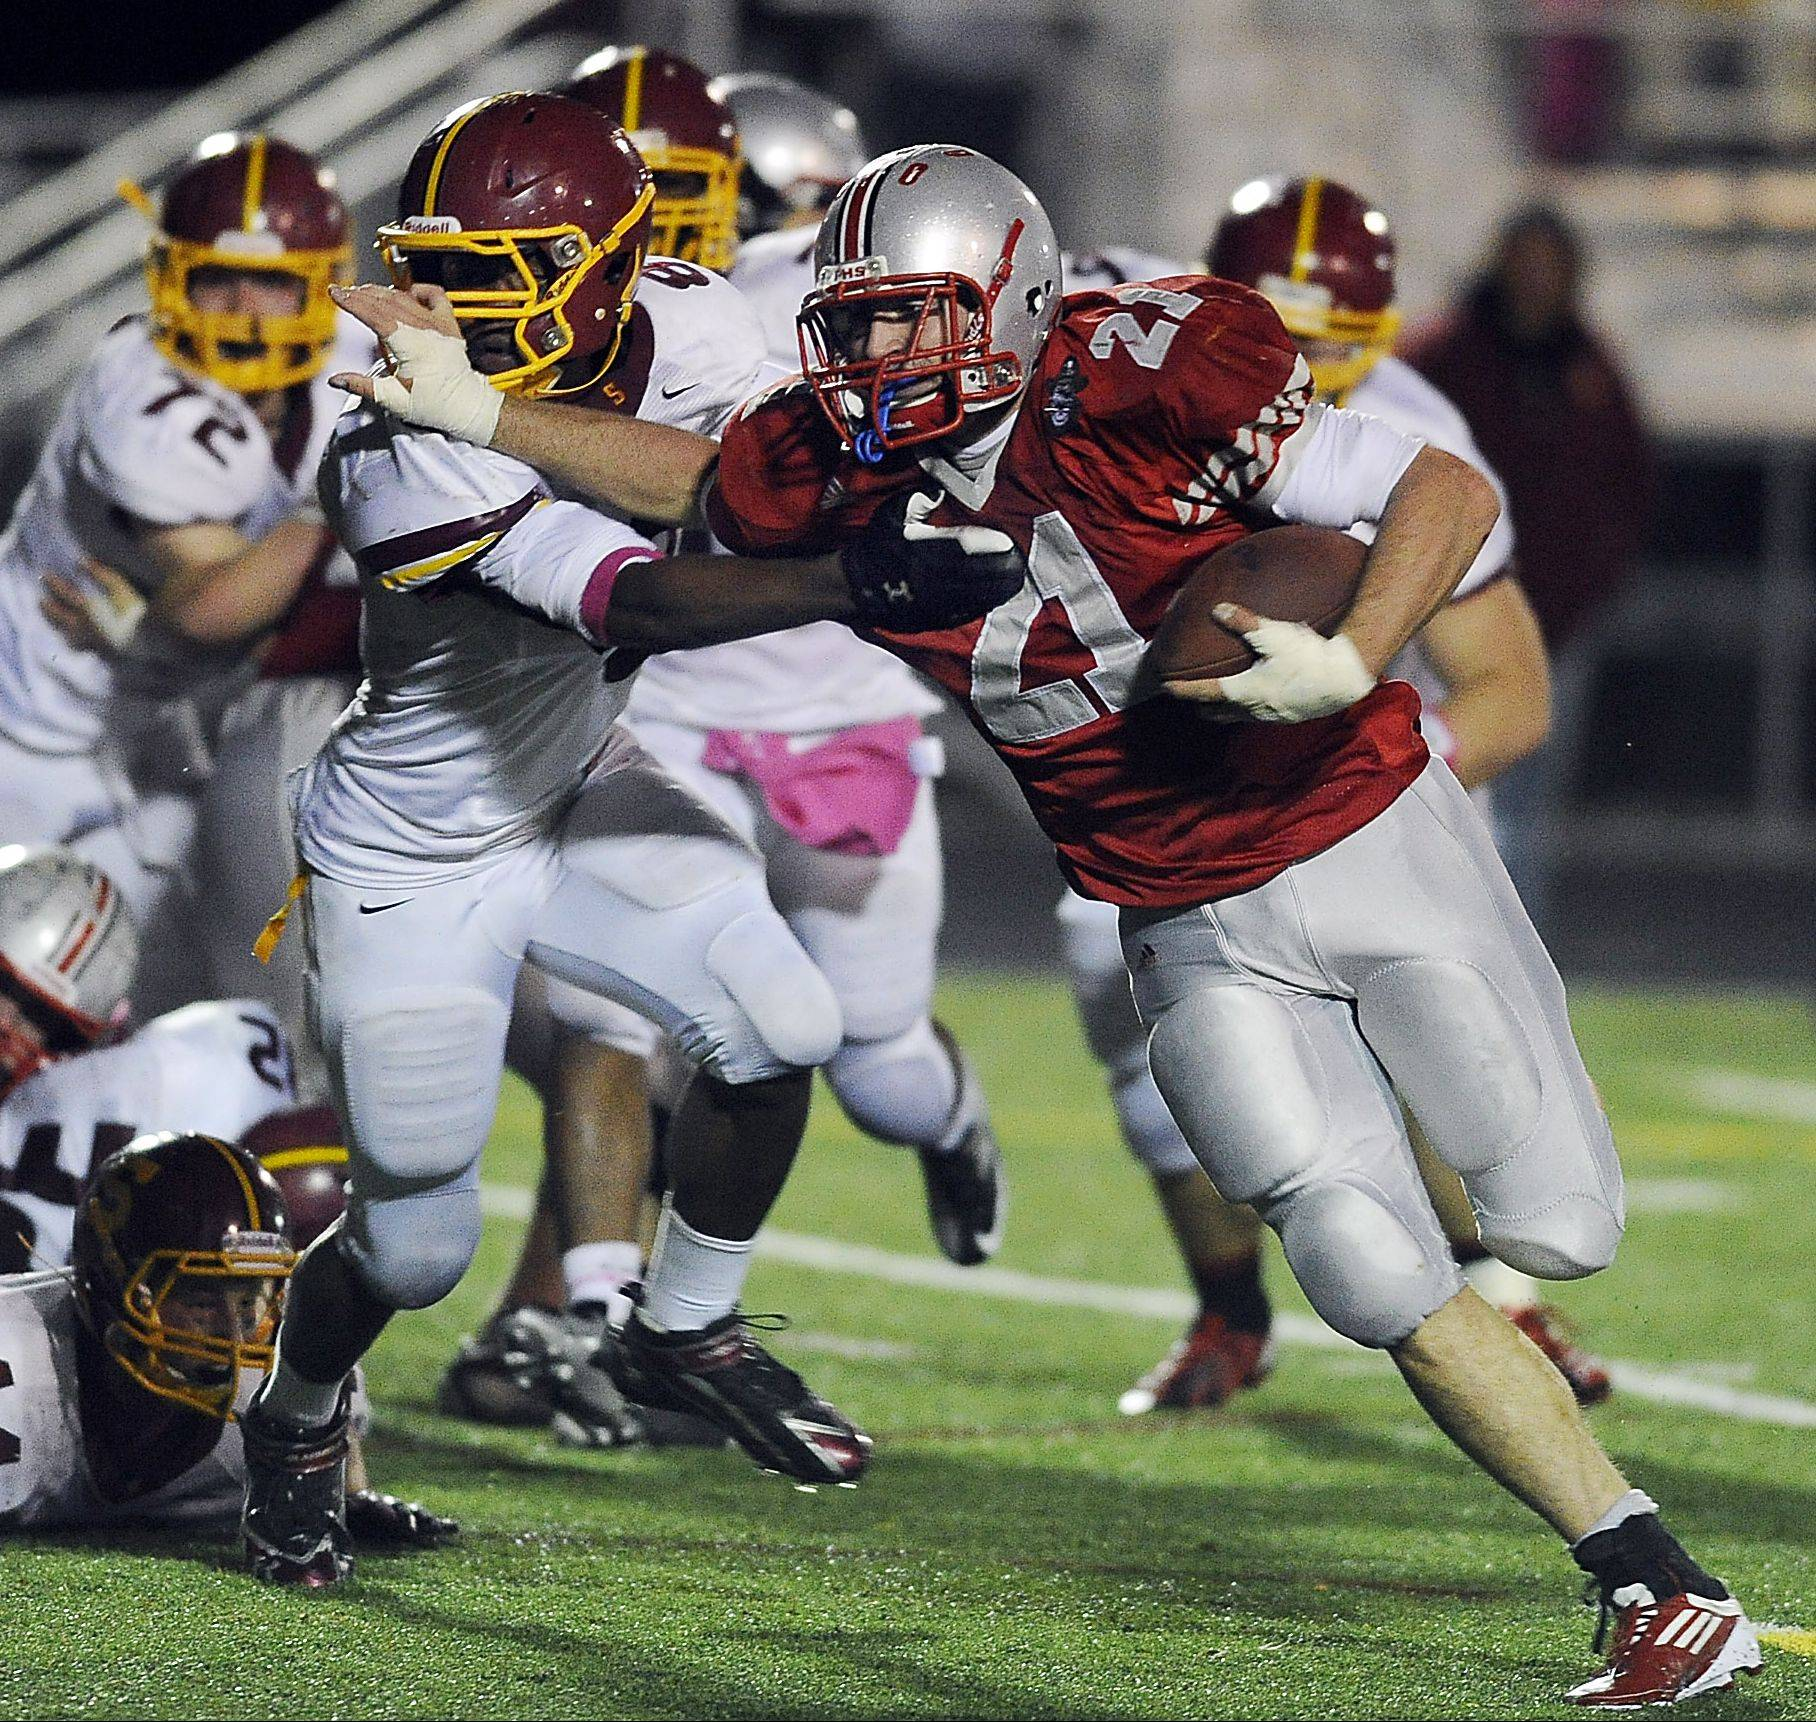 Palatine's John Serio fights off a Schaumburg defender on a first-half touchdown run to help the Pirates top Schaumburg 51-18 and clinch an outright championship in the Mid-Suburban West.